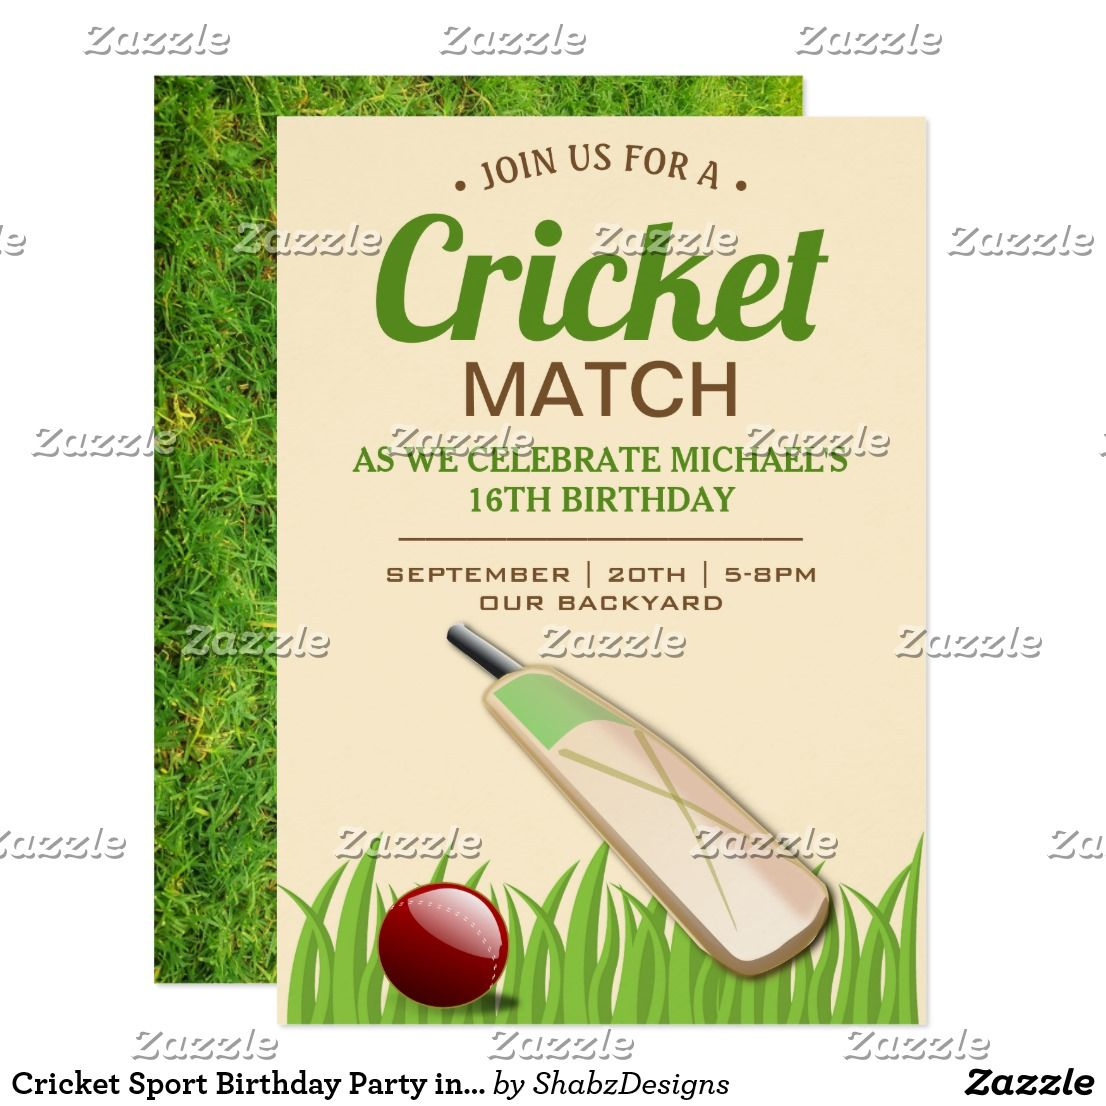 Cricket Sport Birthday Party invitation